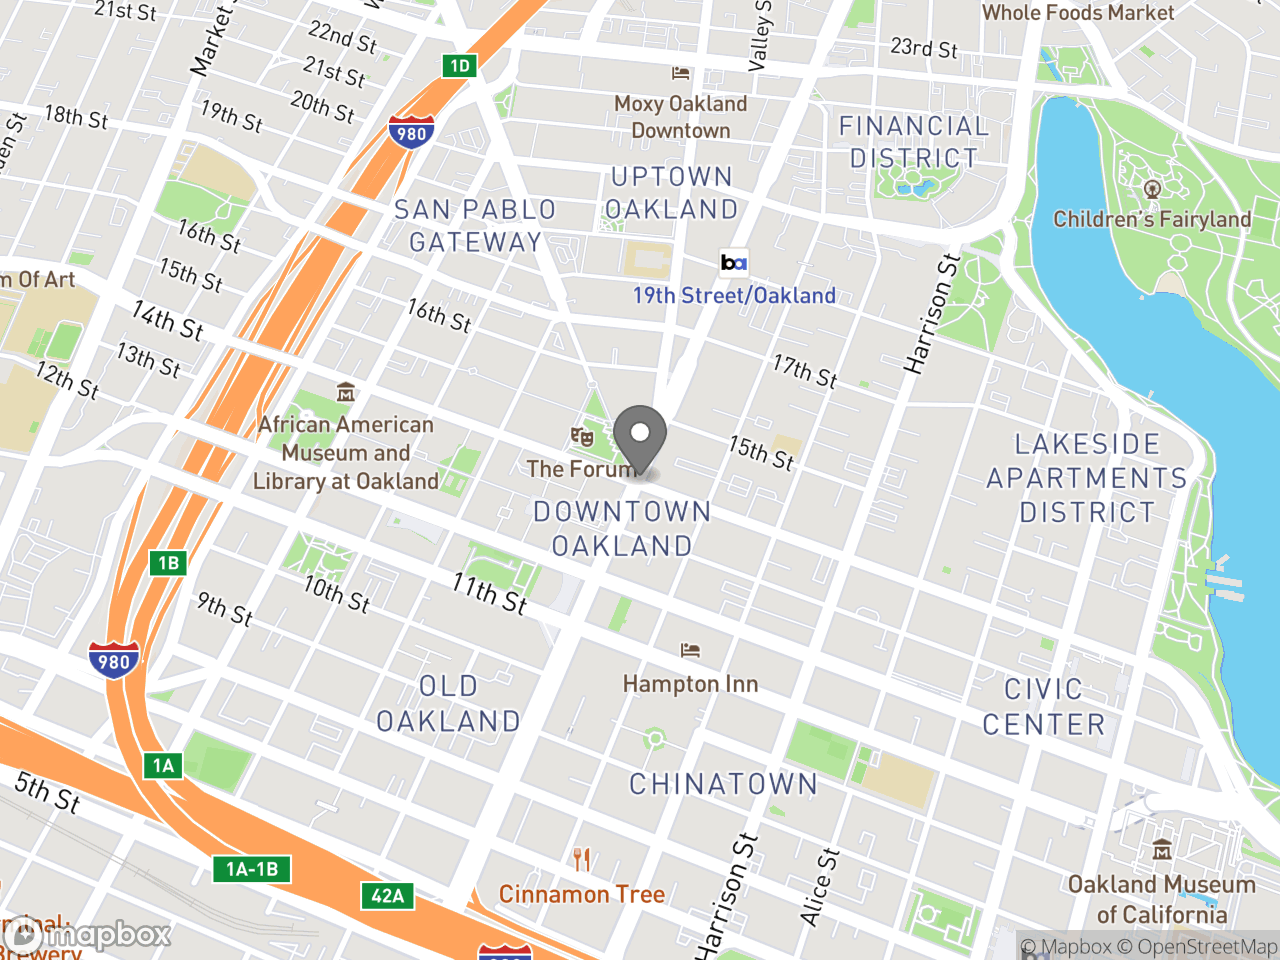 Map location for Oakland Walking Tour, located at  in Oakland, CA